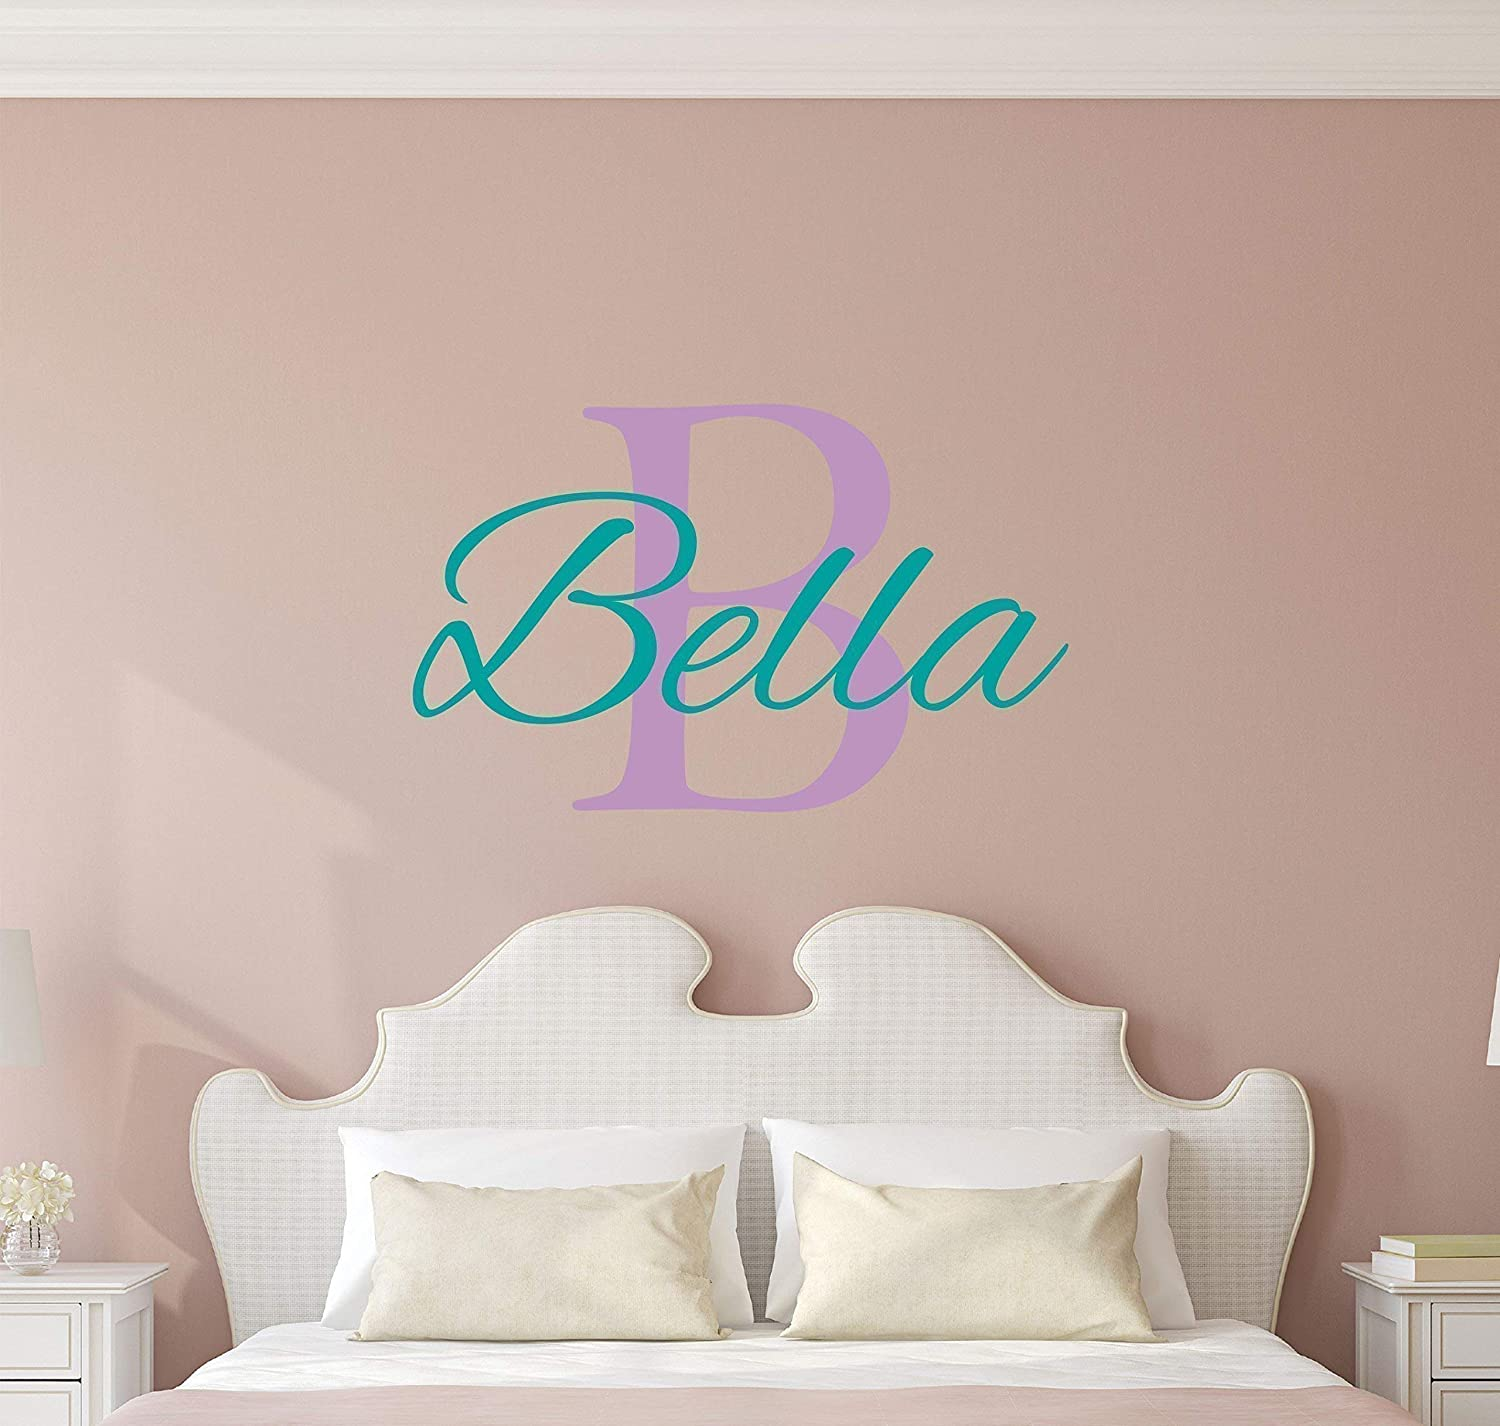 069a606fabcf Custom Name Girls Boys Wall Decal Monogram - Personalized Name Wall Decal  Sticker Art - Name Vinyl Wall Decal - Name and Initial Decal - Nursery Room  Wall ...